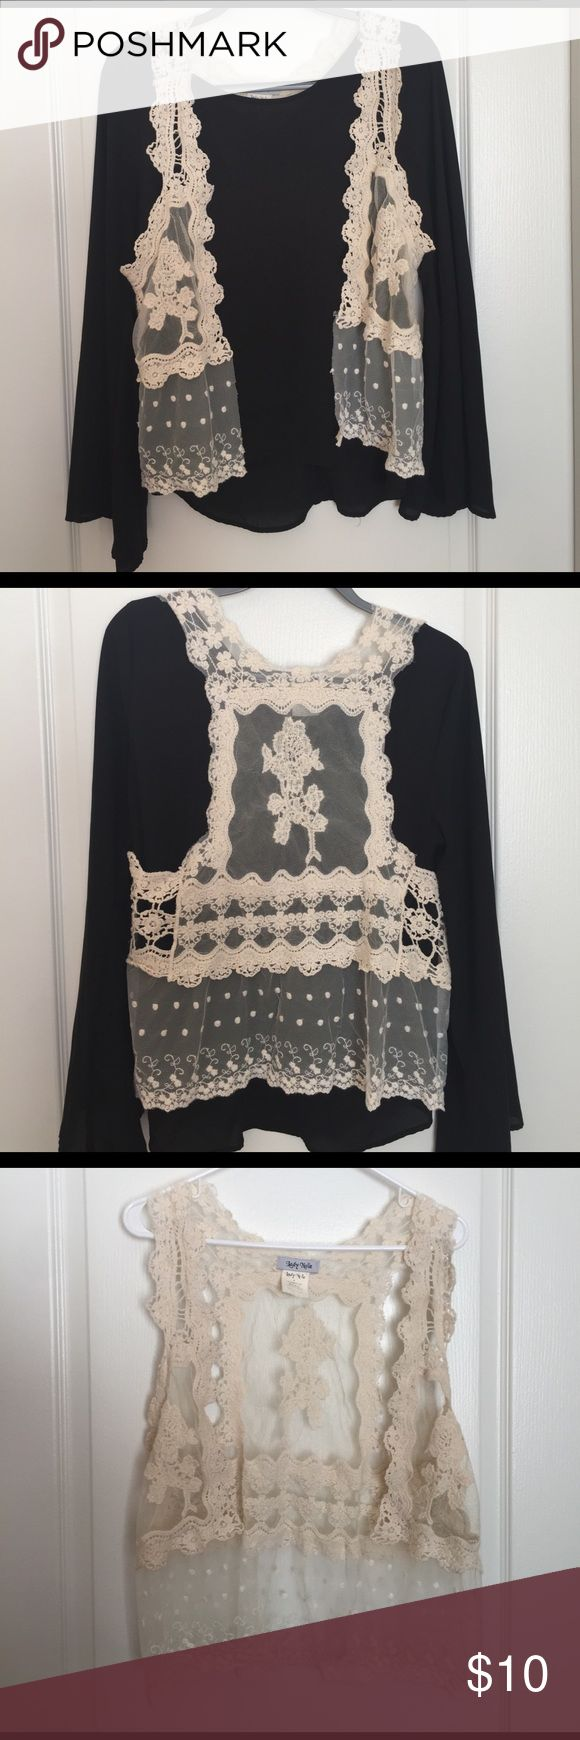 Bohemian Crochet Vest Super cute crochet/mesh vest. Fits well with hippie or bohemian style clothes. Looks great with cowboy boots! Jackets & Coats Vests